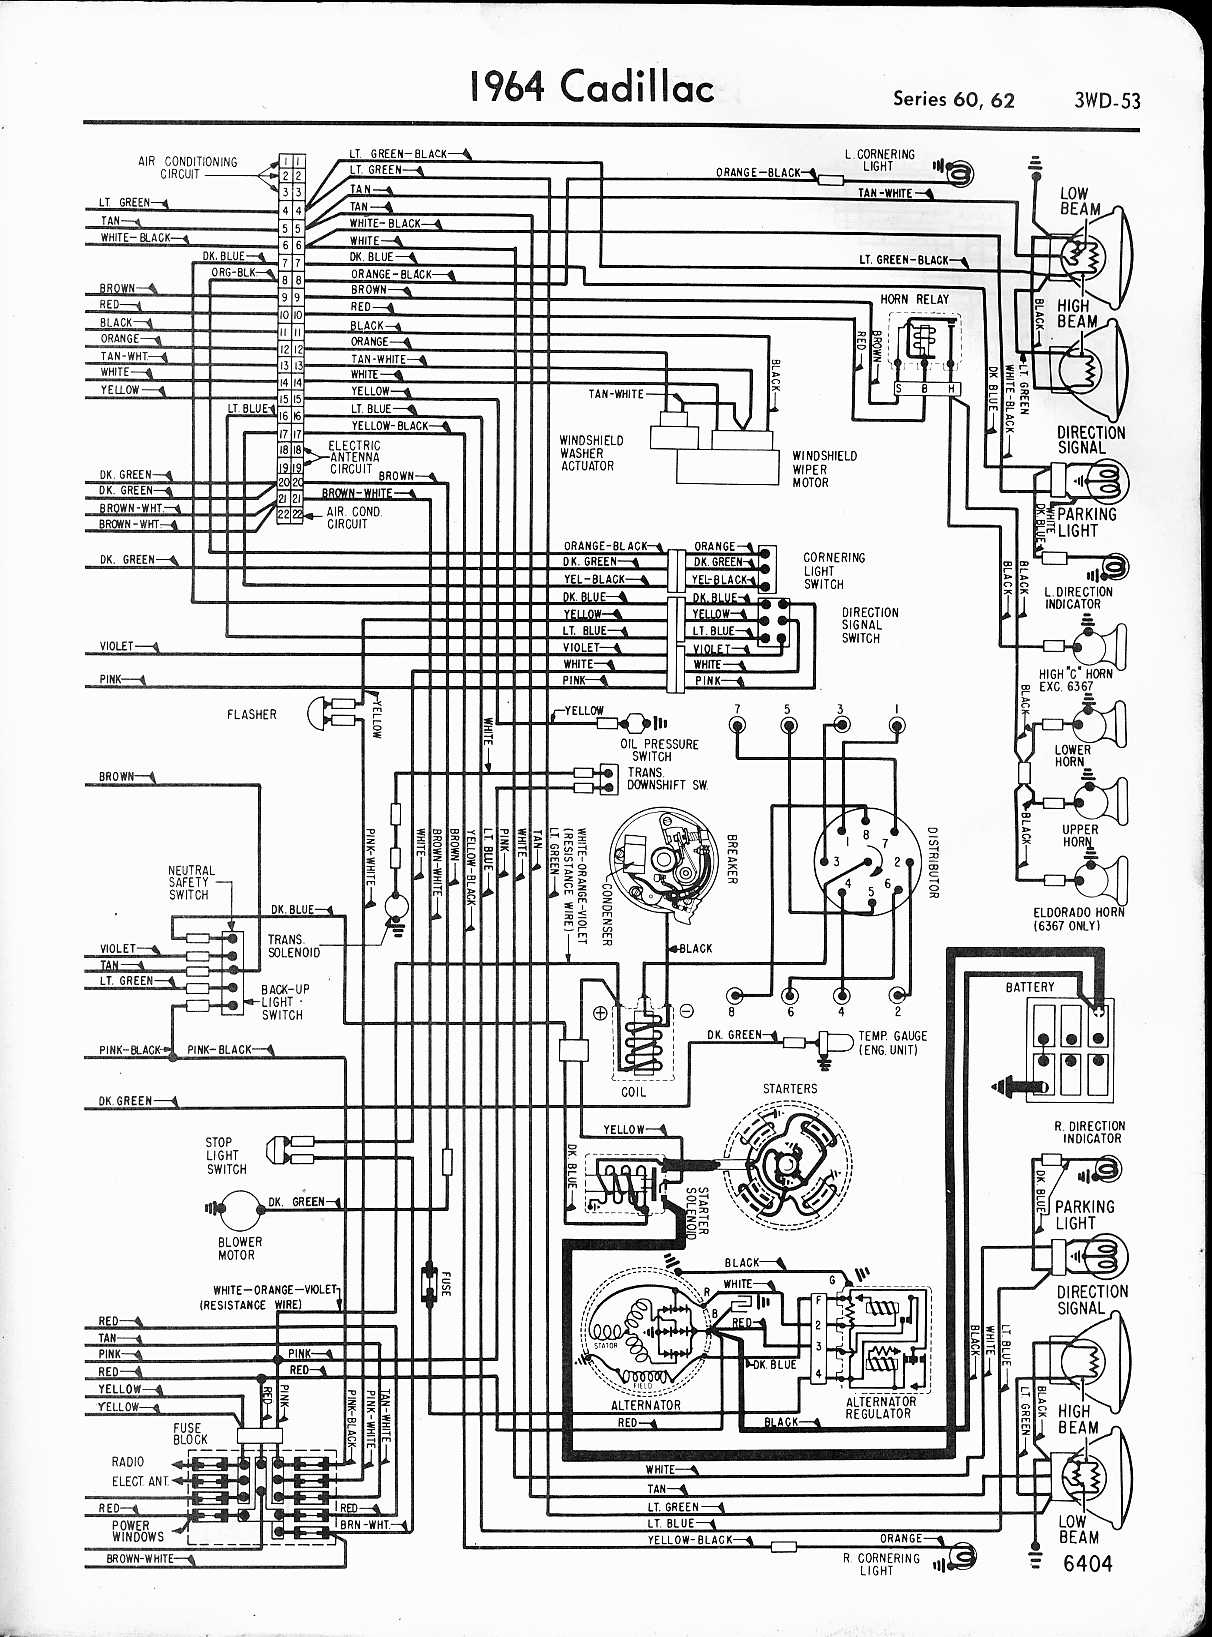 1964 Cadillac Wiring Diagram Reinvent Your 1970